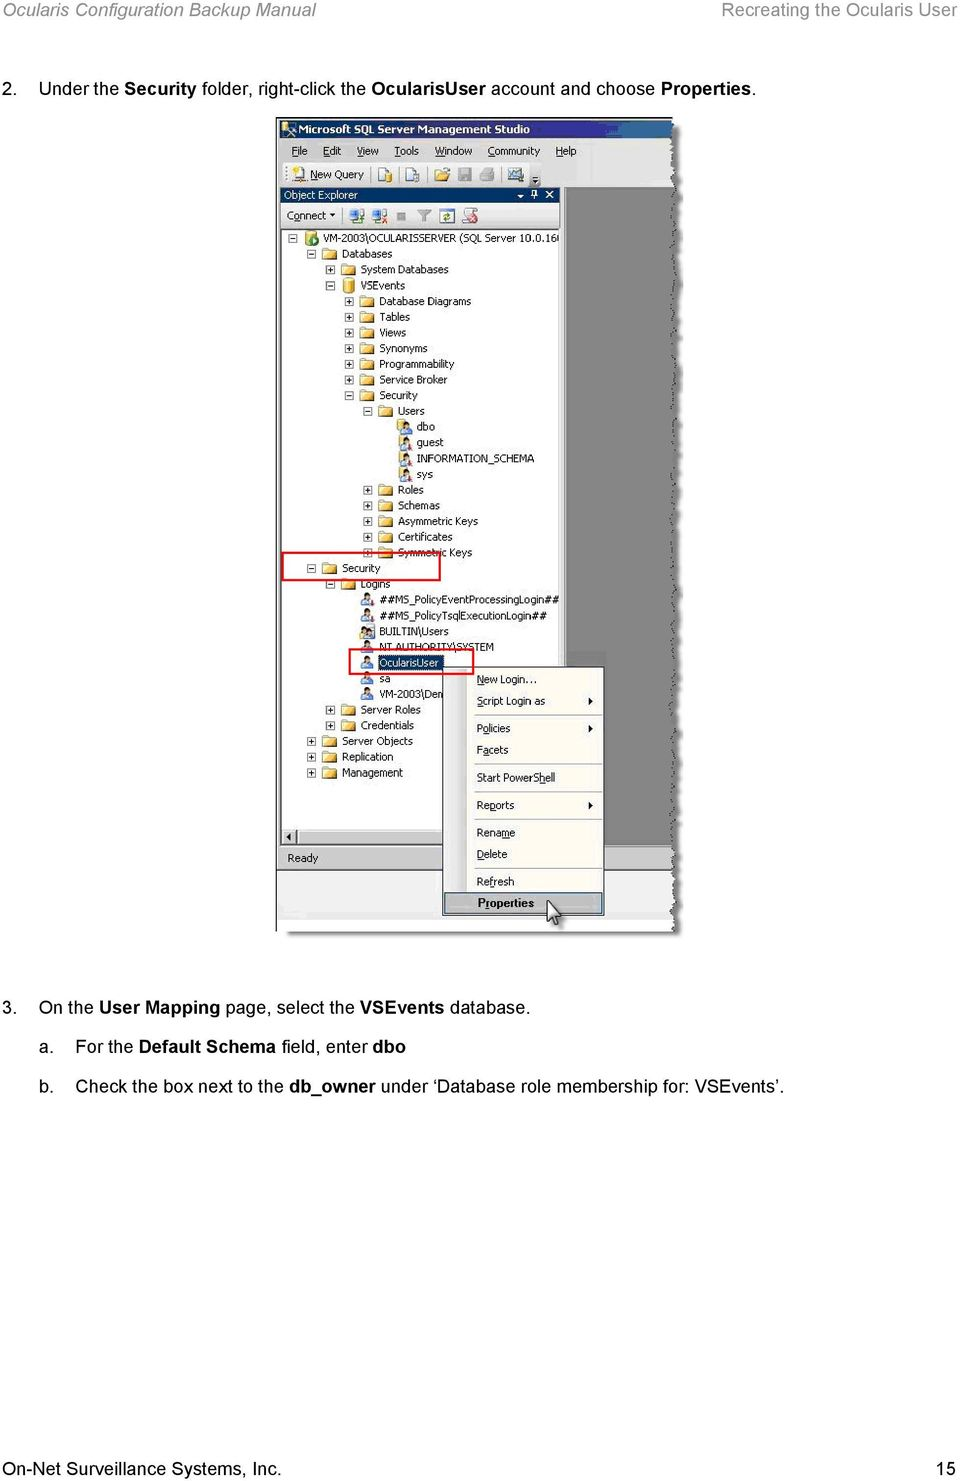 3. On the User Mapping page, select the VSEvents database. a.